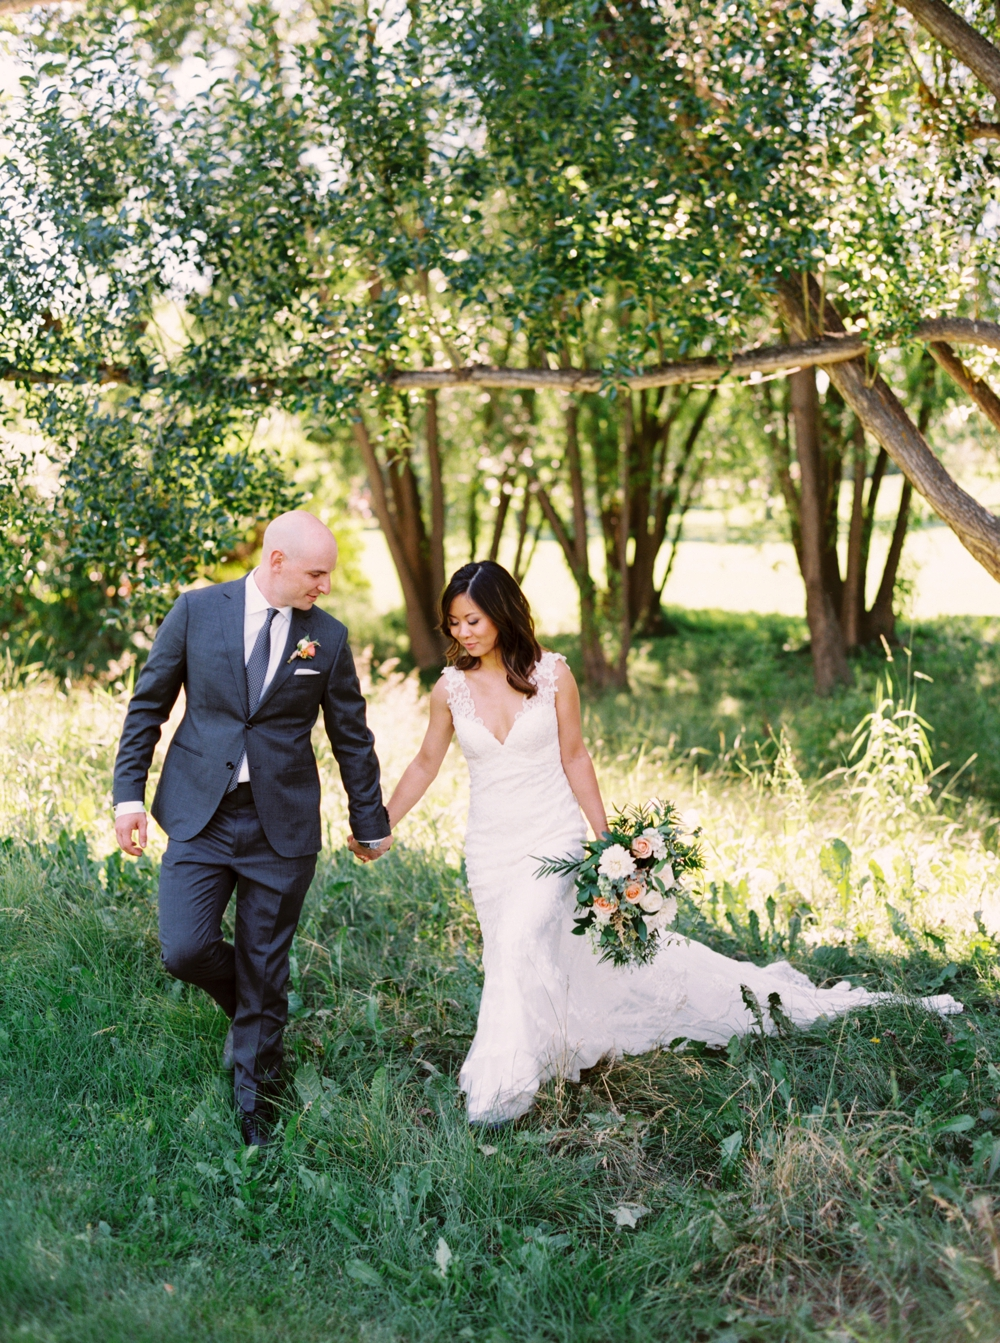 Calgary Wedding Photographer | Meadow Muse Pavilion Wedding | Canmore Photographers | Fish Creek Park | Tent Wedding